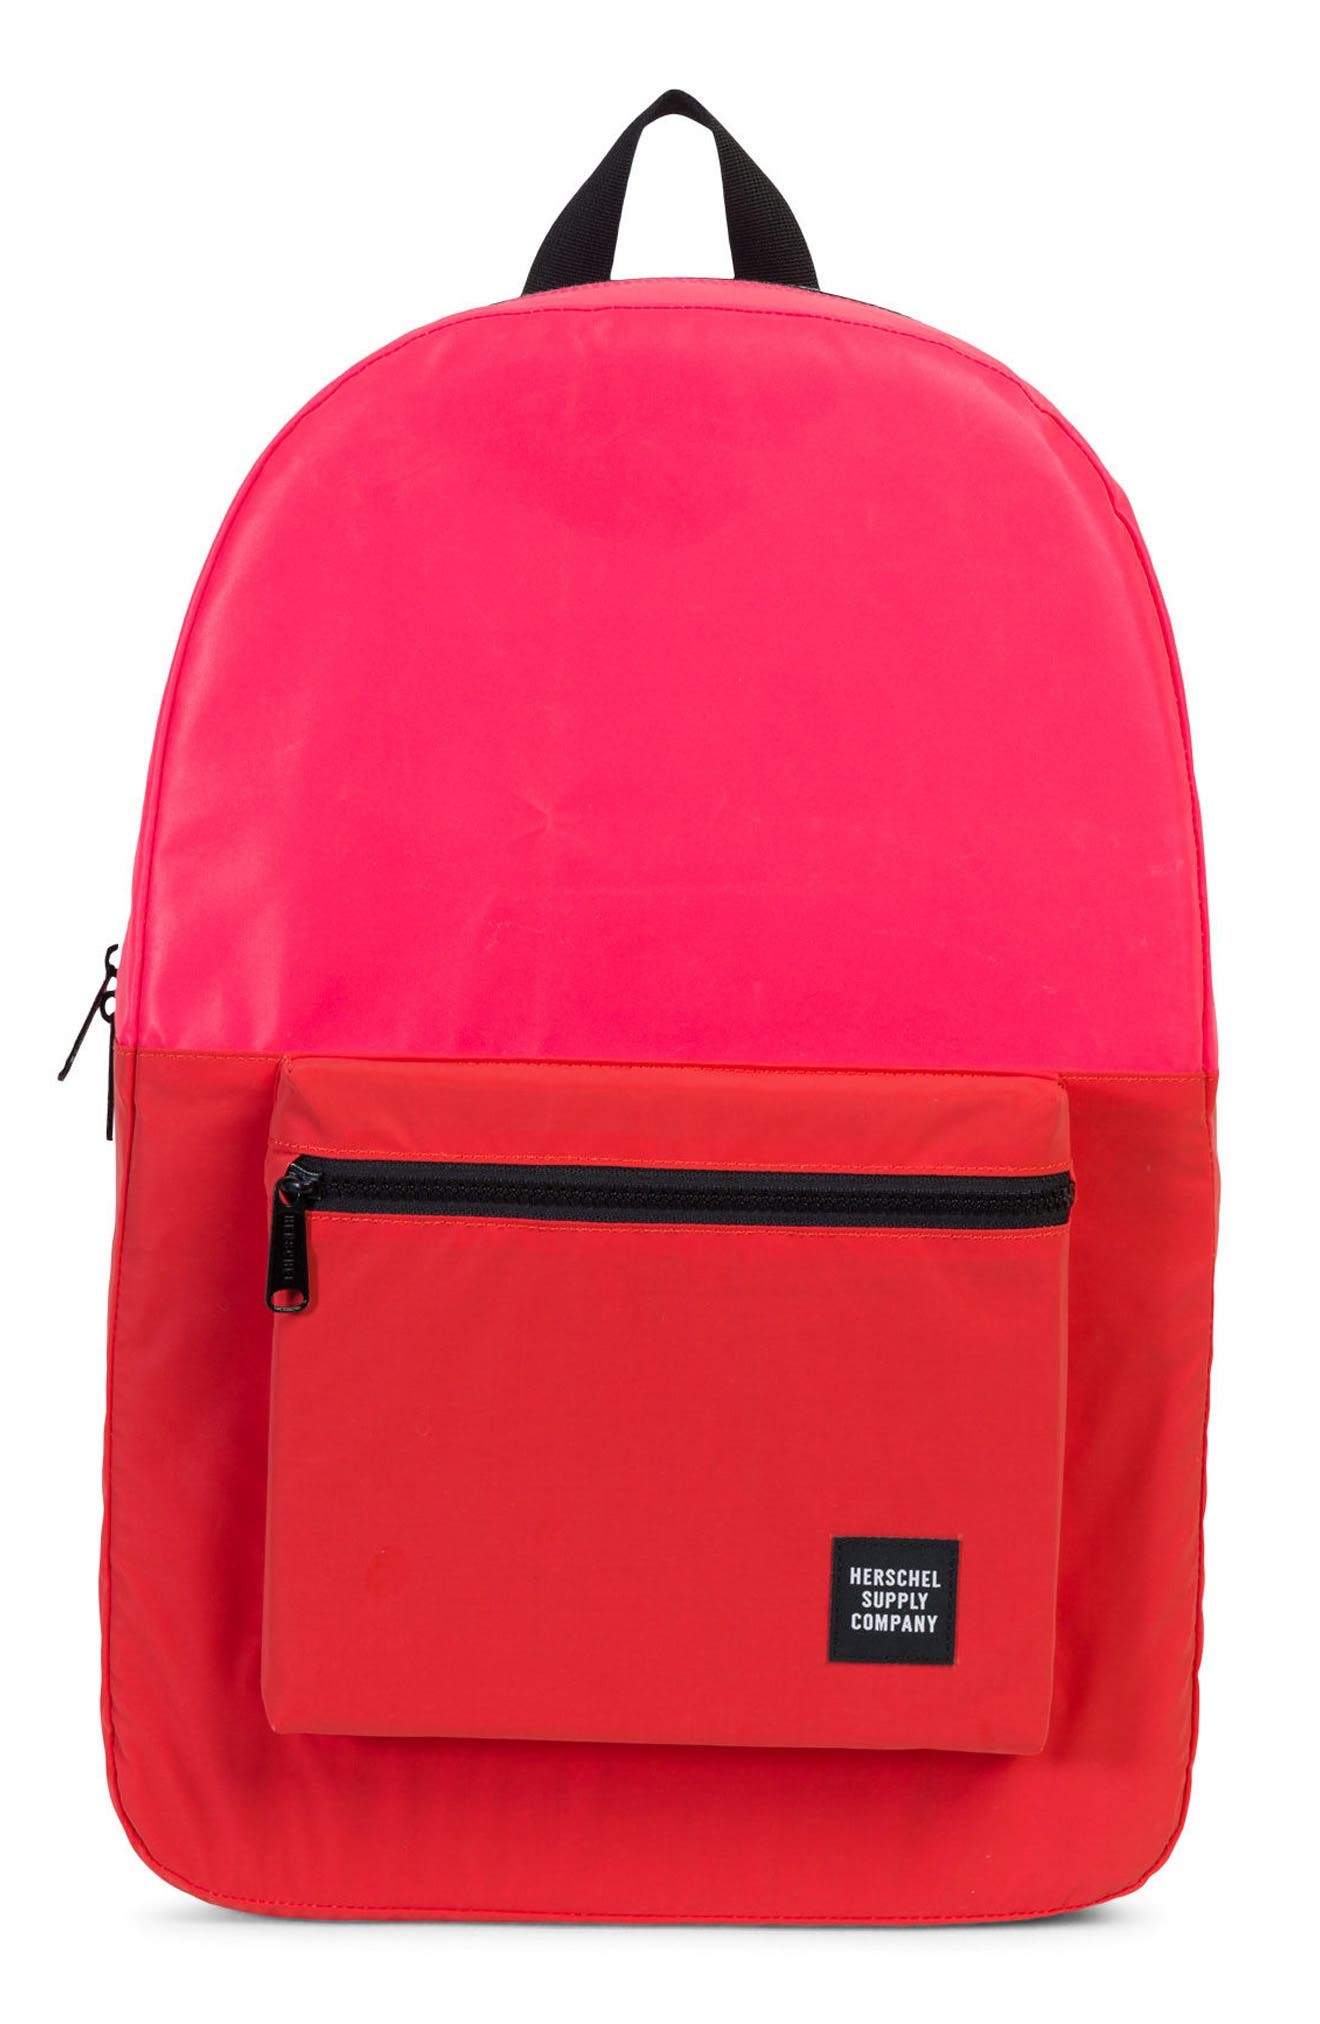 Heritage Reflective Backpack,                             Main thumbnail 1, color,                             Neon Pink Reflective/ Red